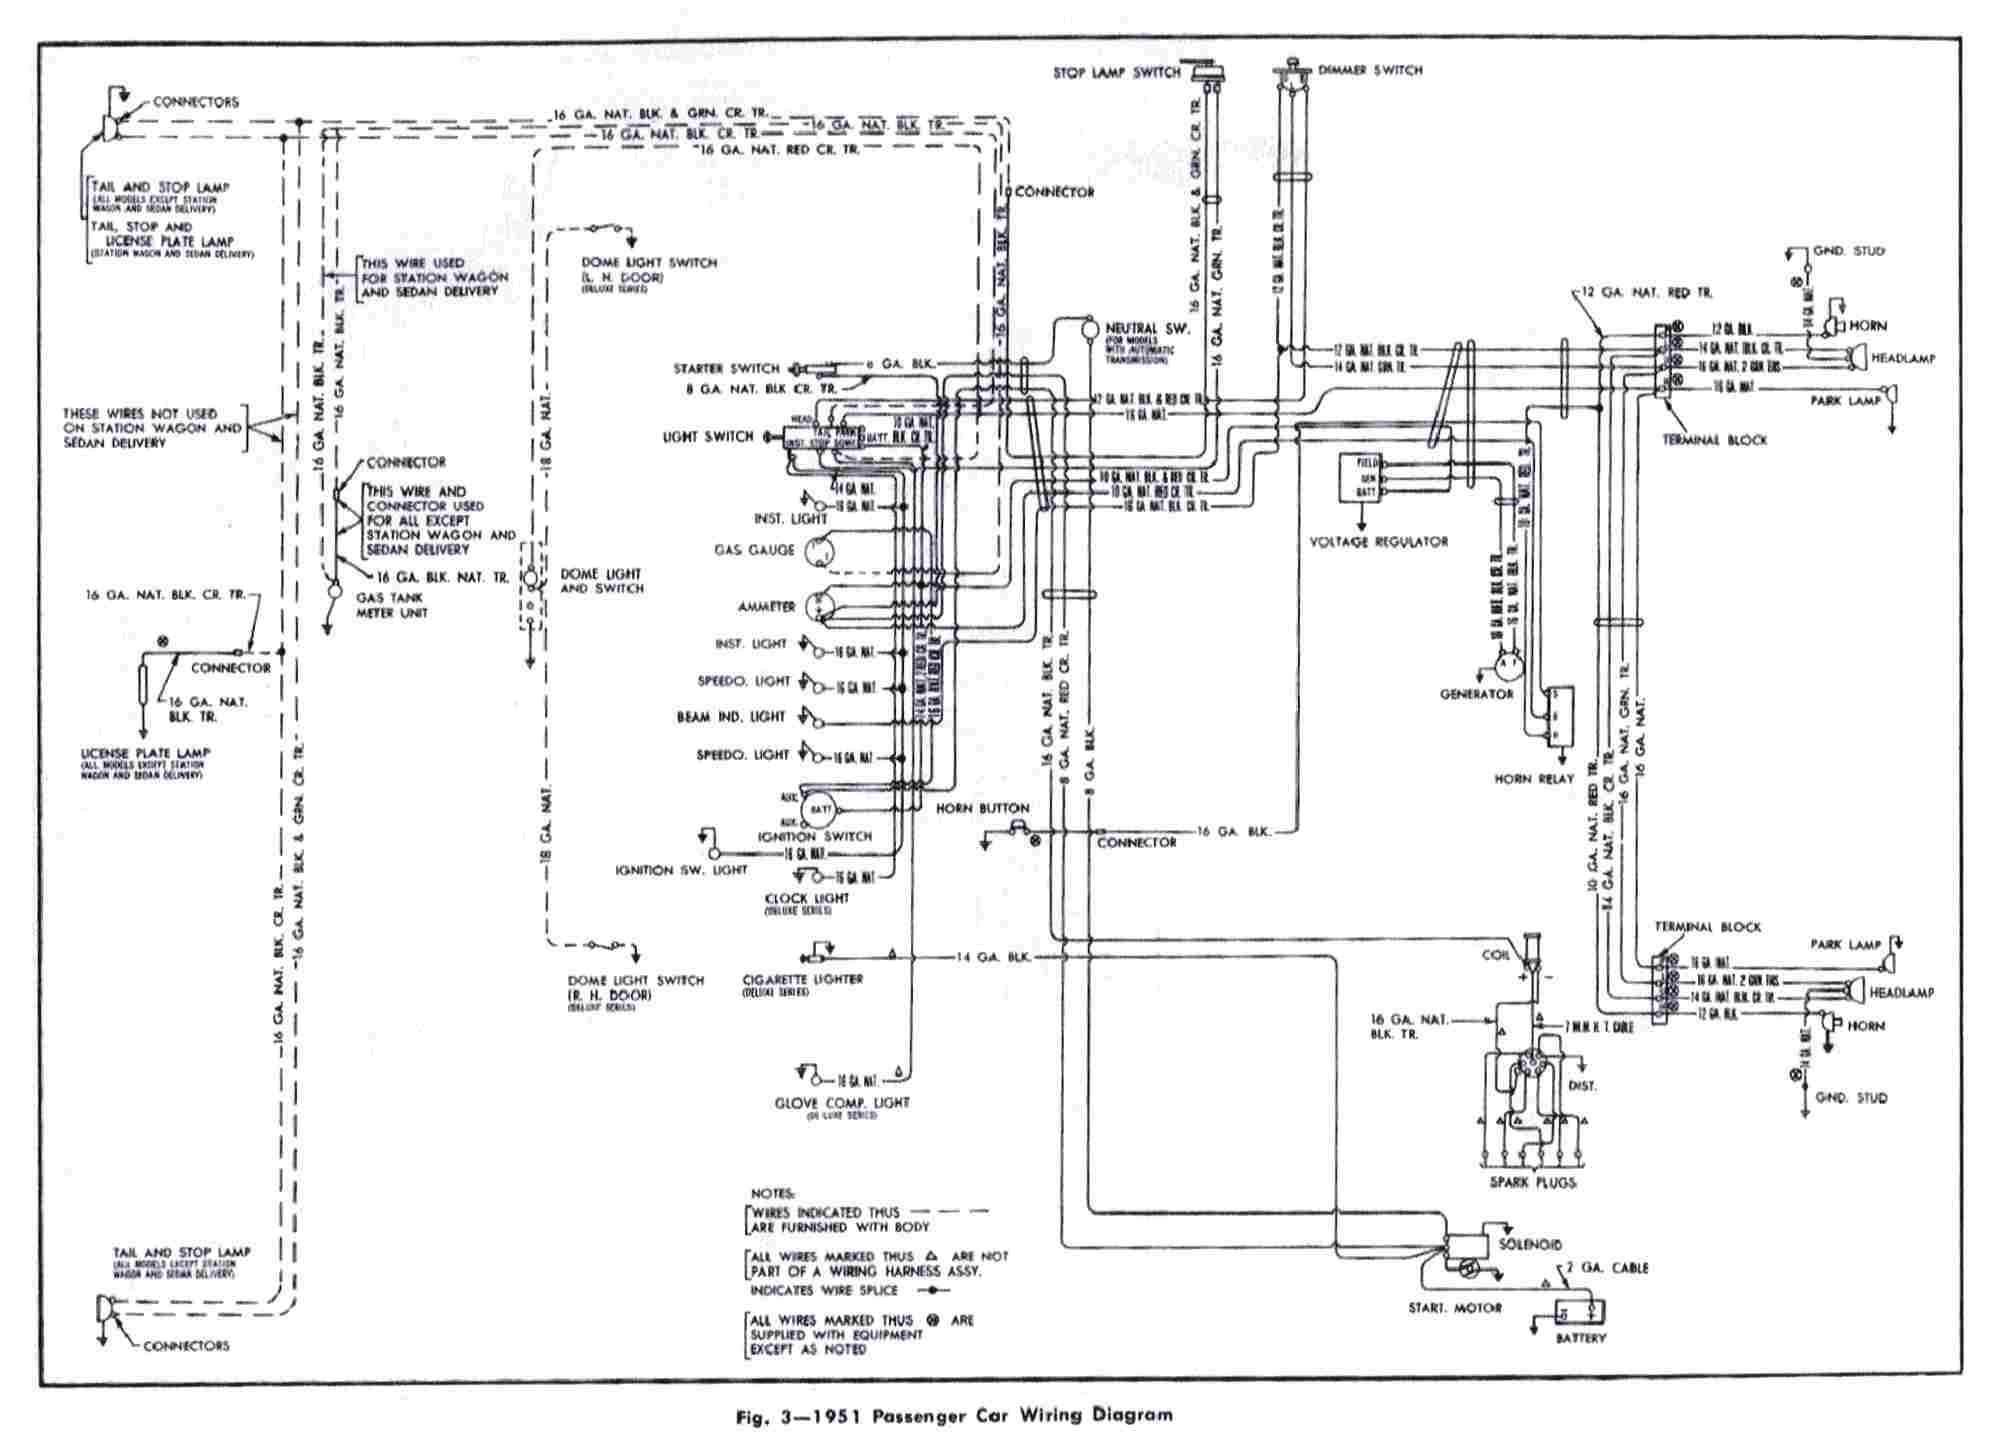 88 chevy truck wiring diagram wiring harness for 1996 chevy blazer wiring discover your wiring 1988 trans am dash wiring diagram